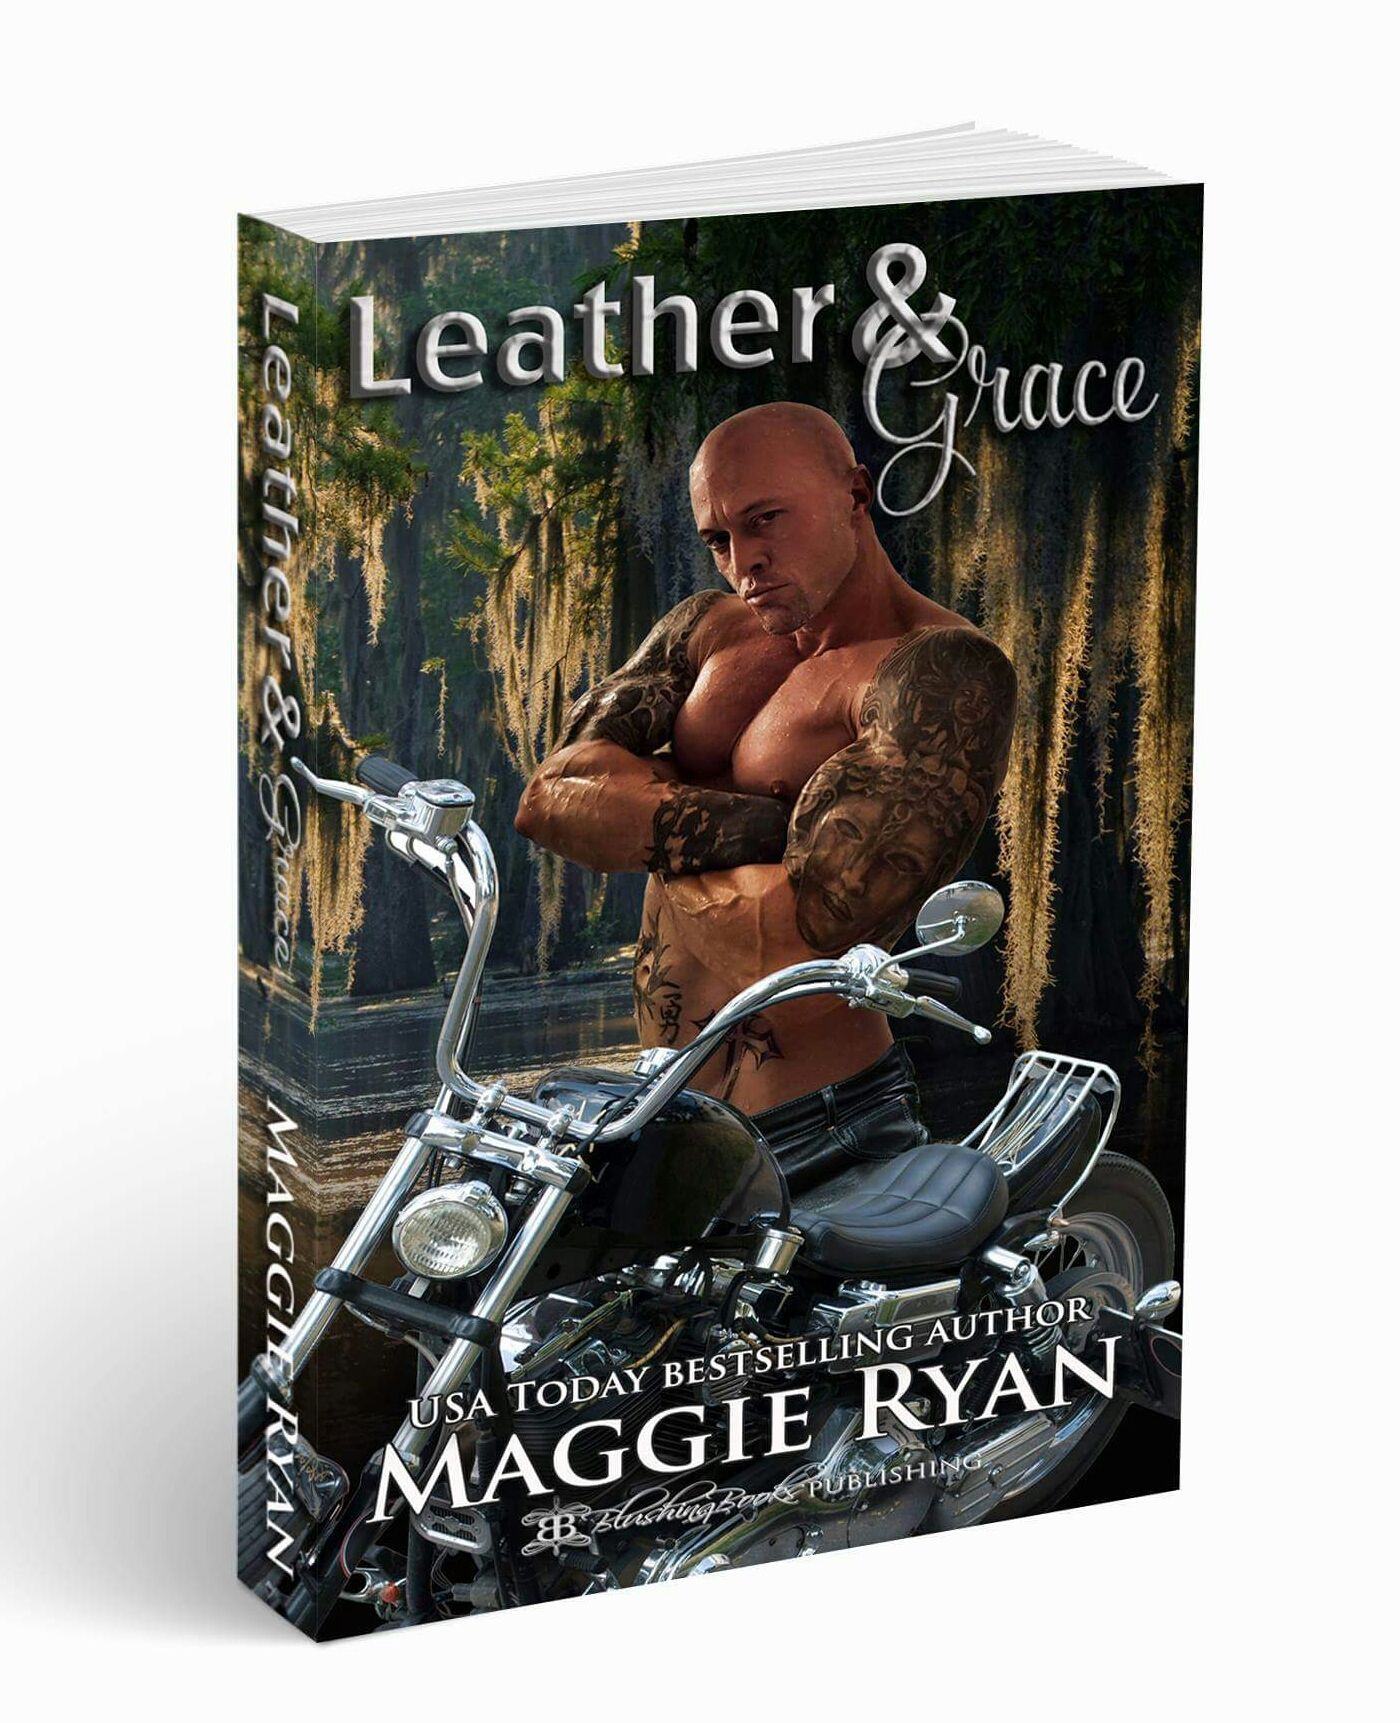 Cover Model & Actor John Quinlan Leather & Grace by Maggie Ryan #JohnQuinlan